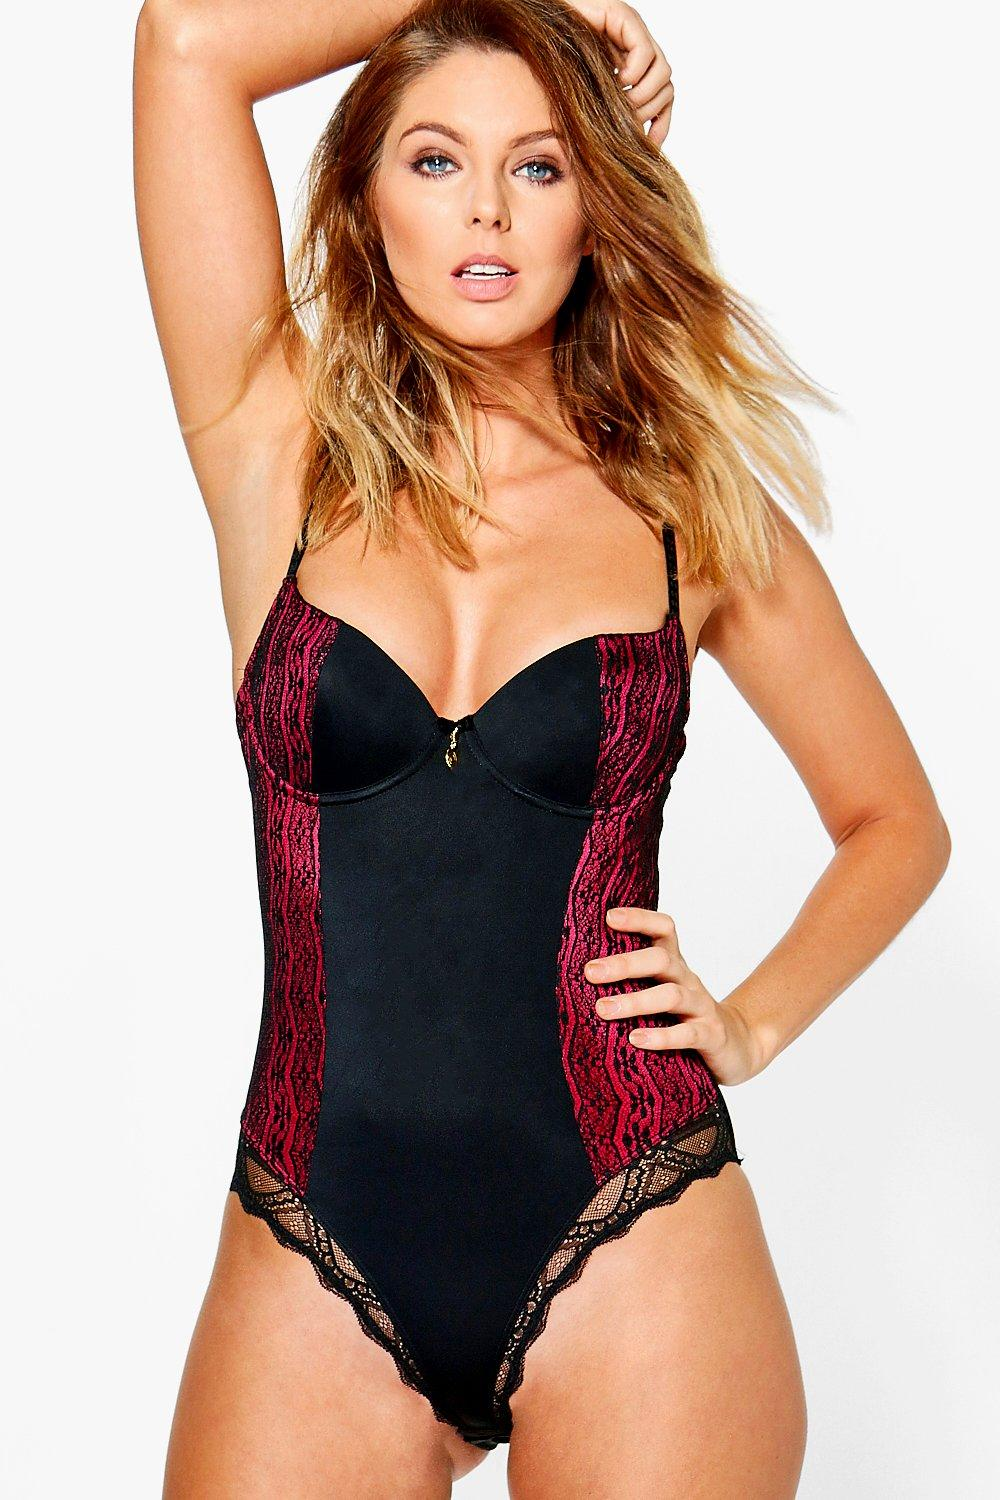 Angel Contrast Detail Underwired Lingerie Body